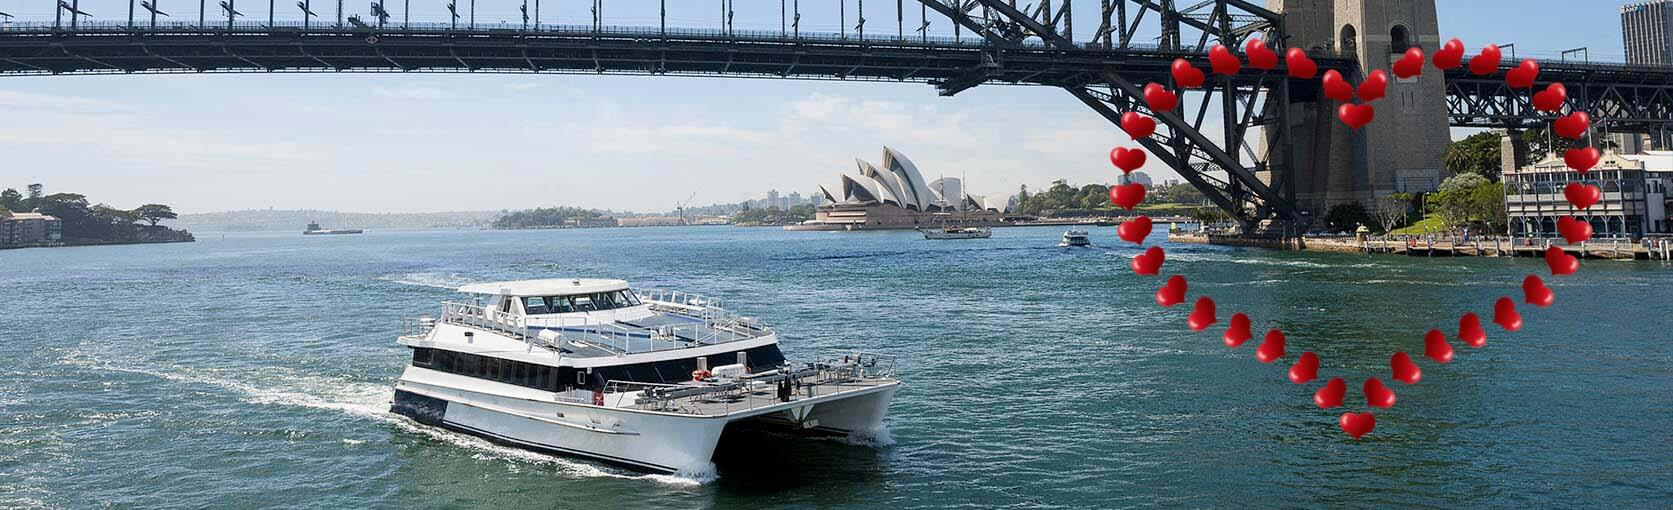 Valentines Day Cruise on Sydney Harbour